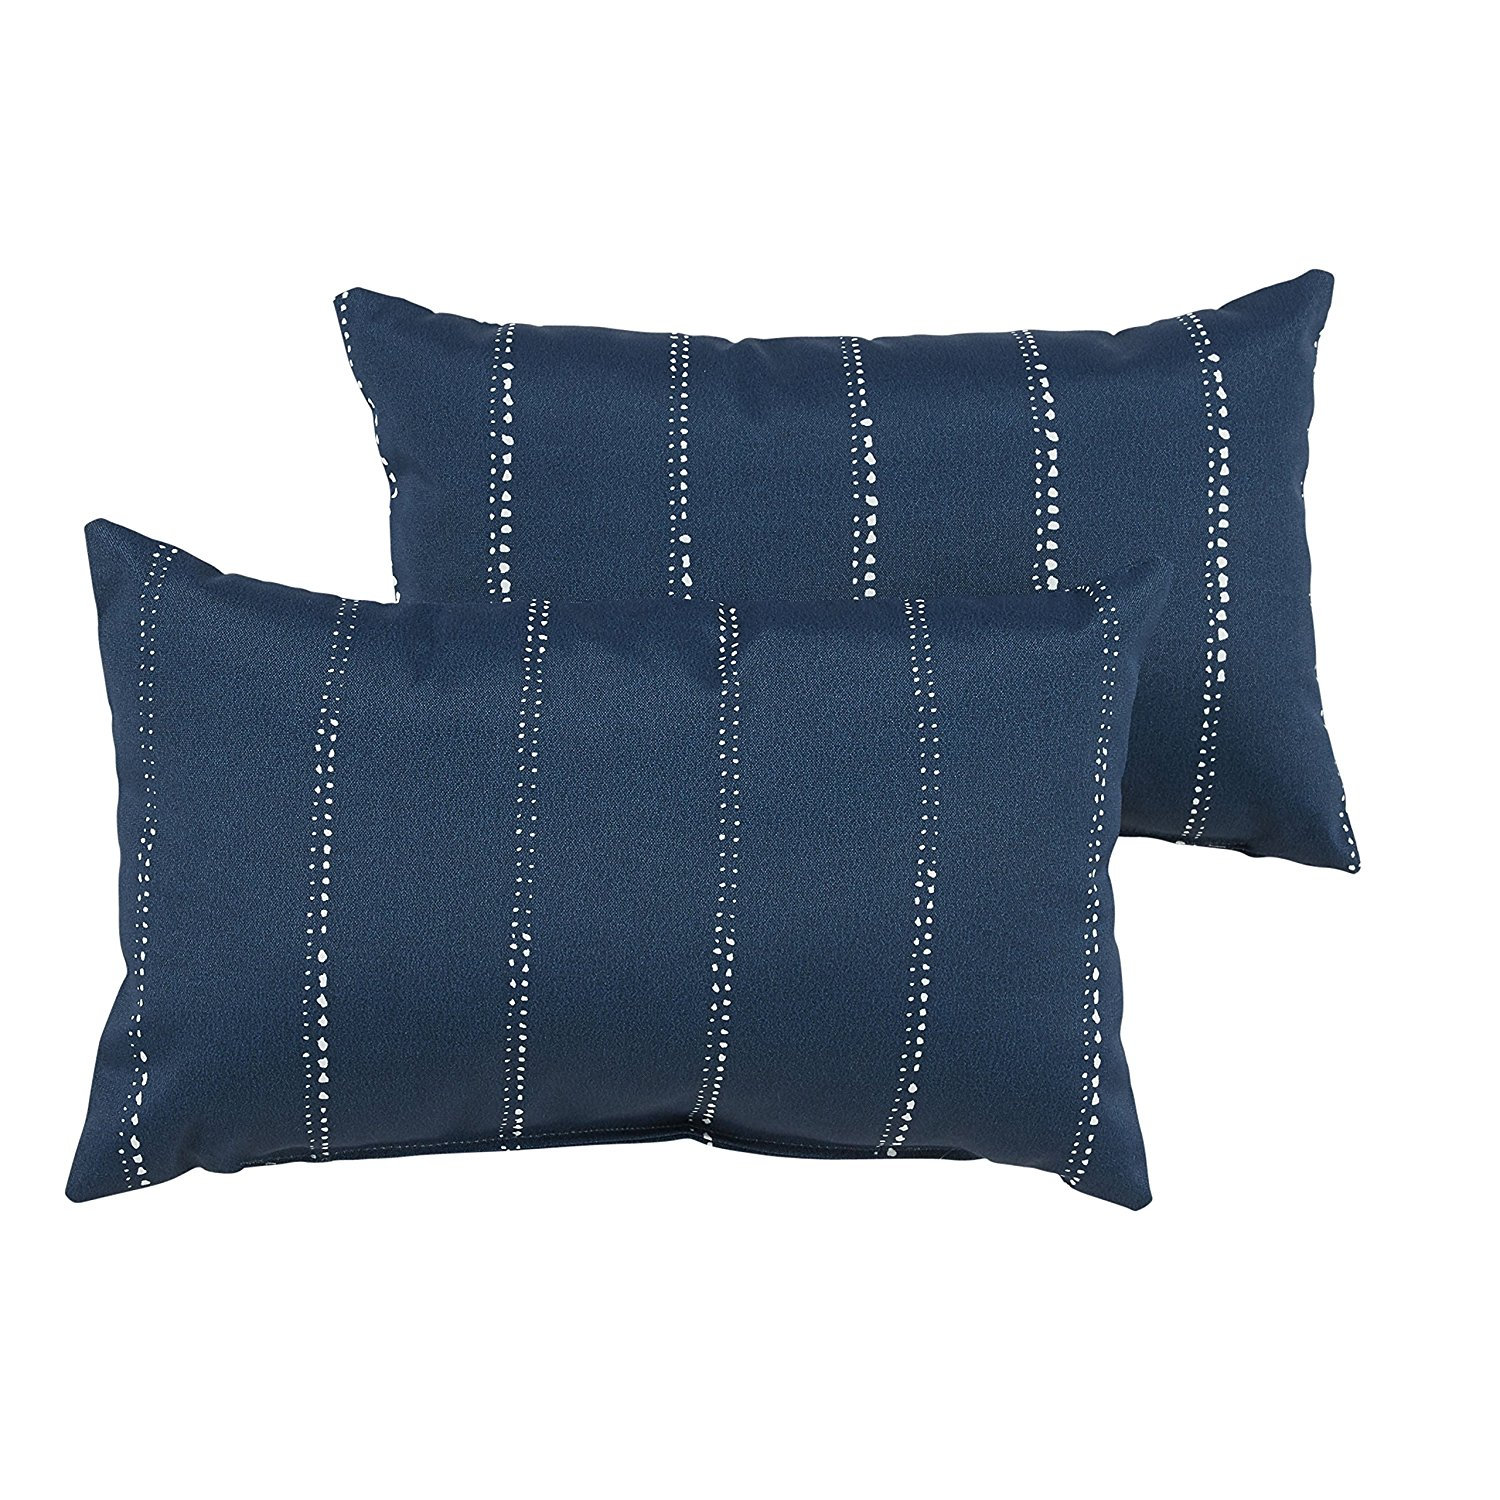 Mozaic Company Indoor/ Outdoor 12 by 18-inch Knife Edge Pillow, Navy Dotted Stripes, Set of 2